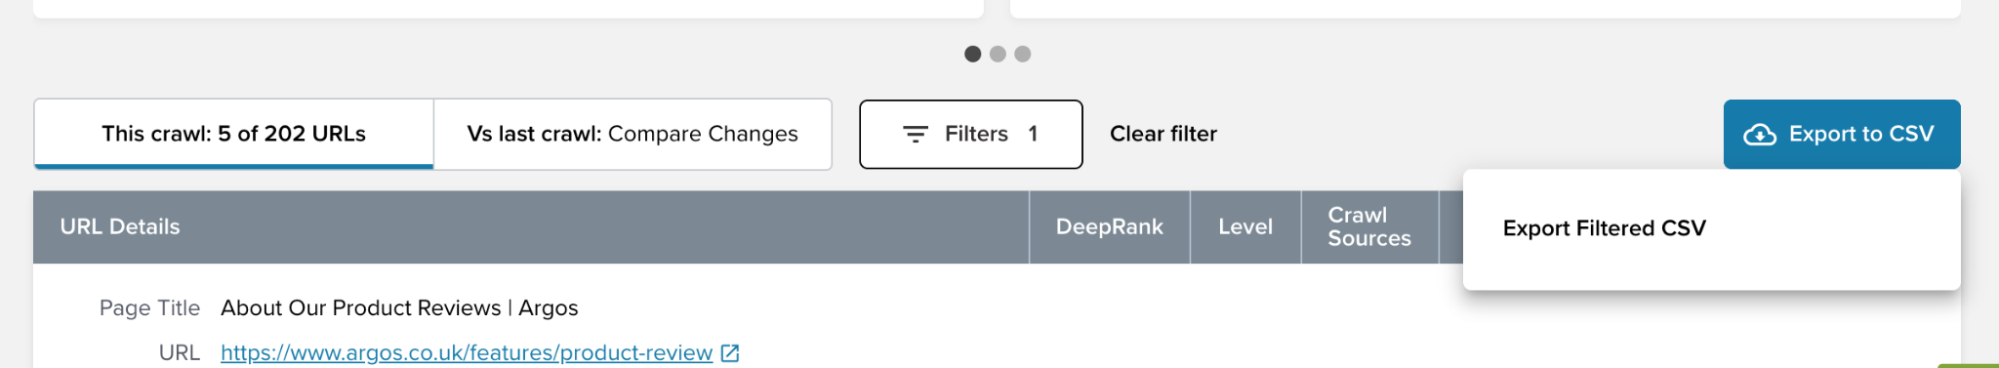 Exporting a filtered CSV with segmentation on Deepcrawl